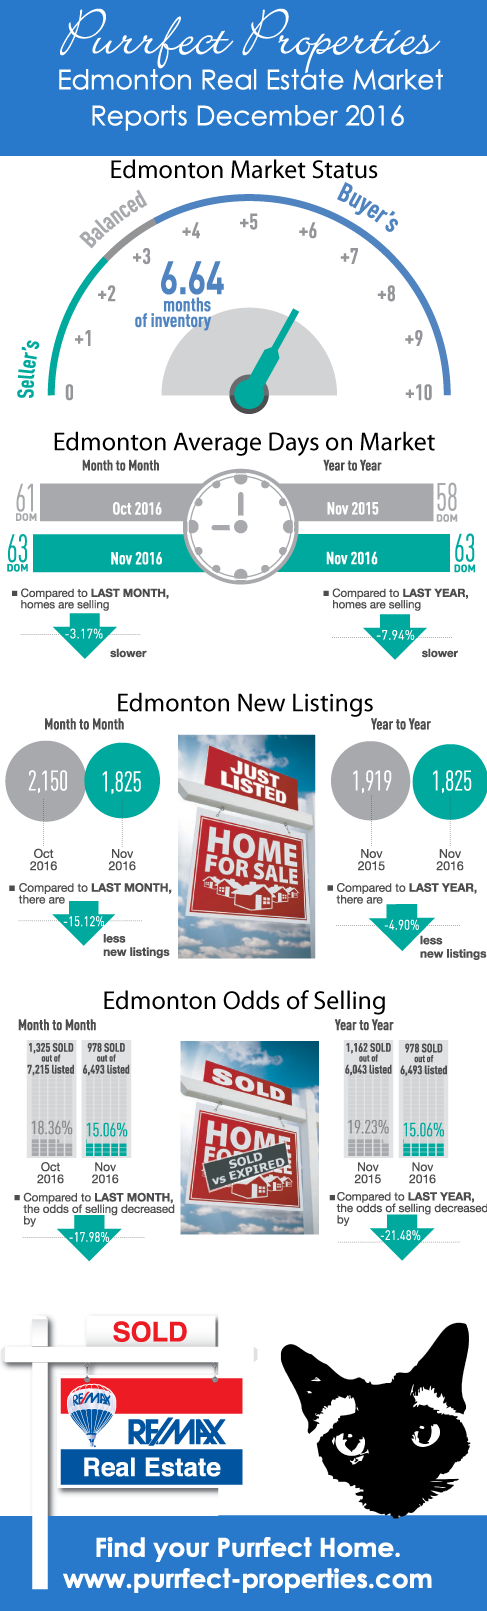 Edmonton Real Estate Market Reports December 2016